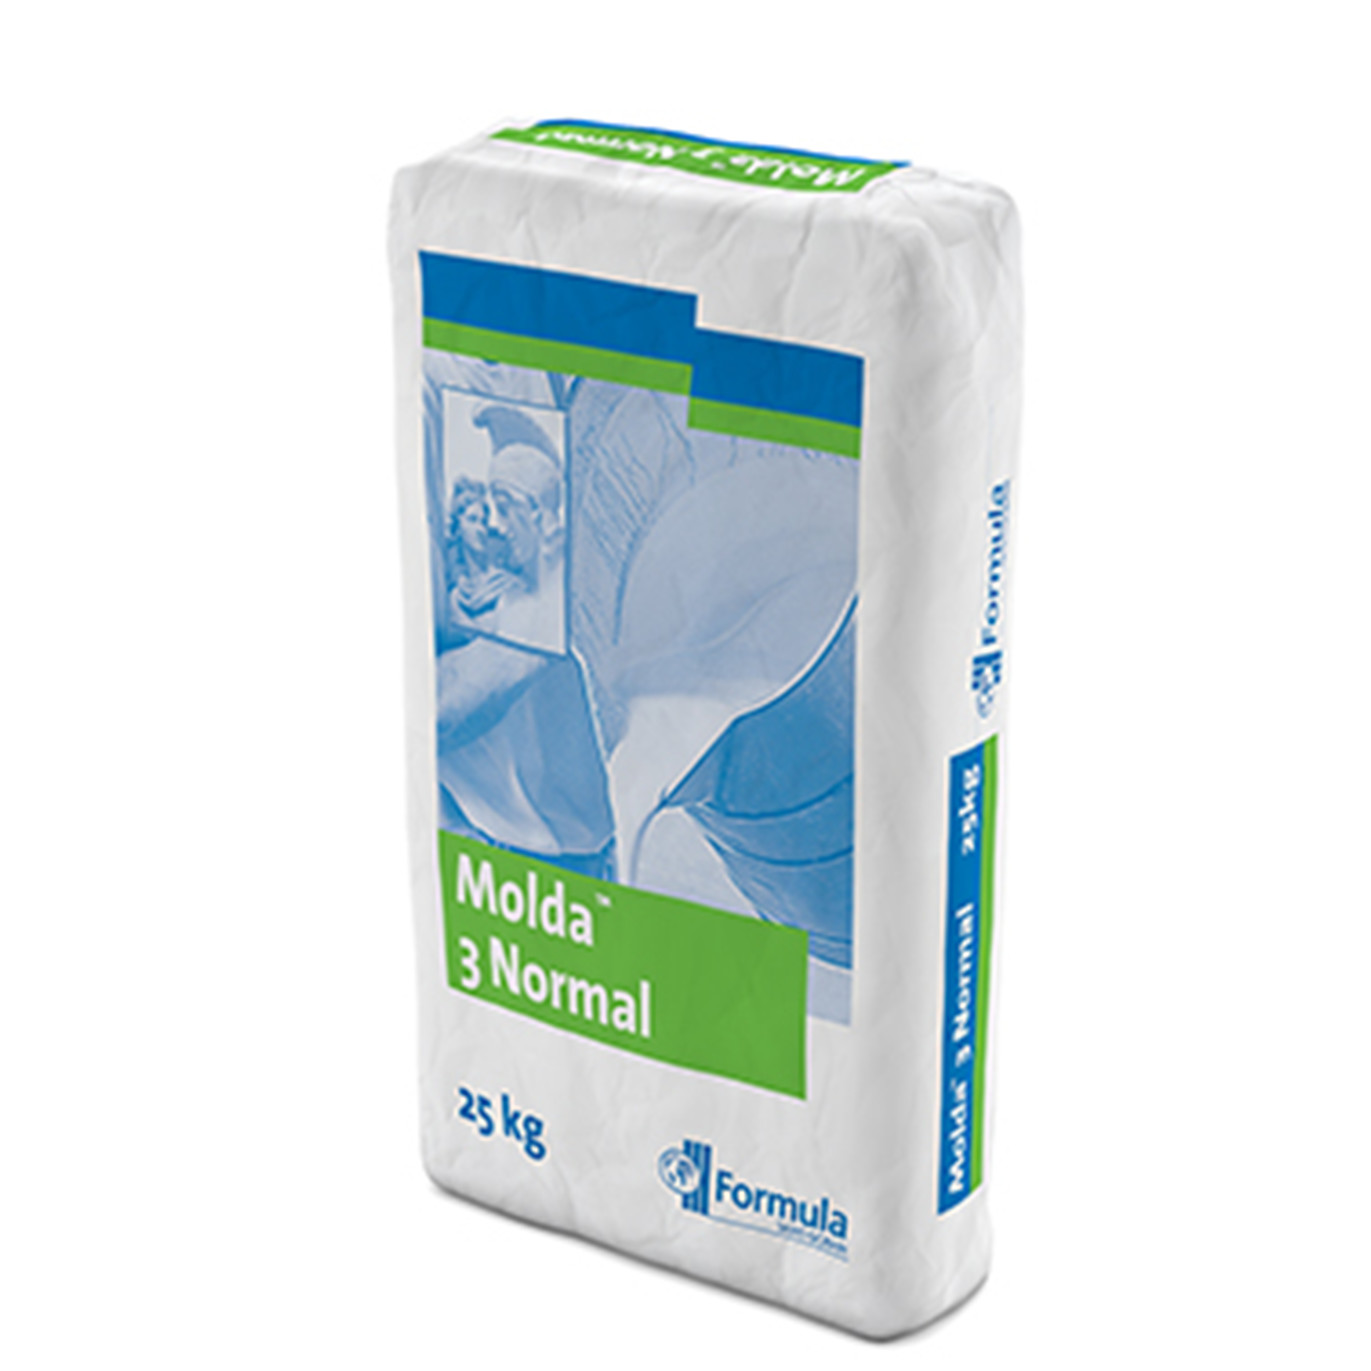 Molda 3 Normal | Saint-Gobain Formula